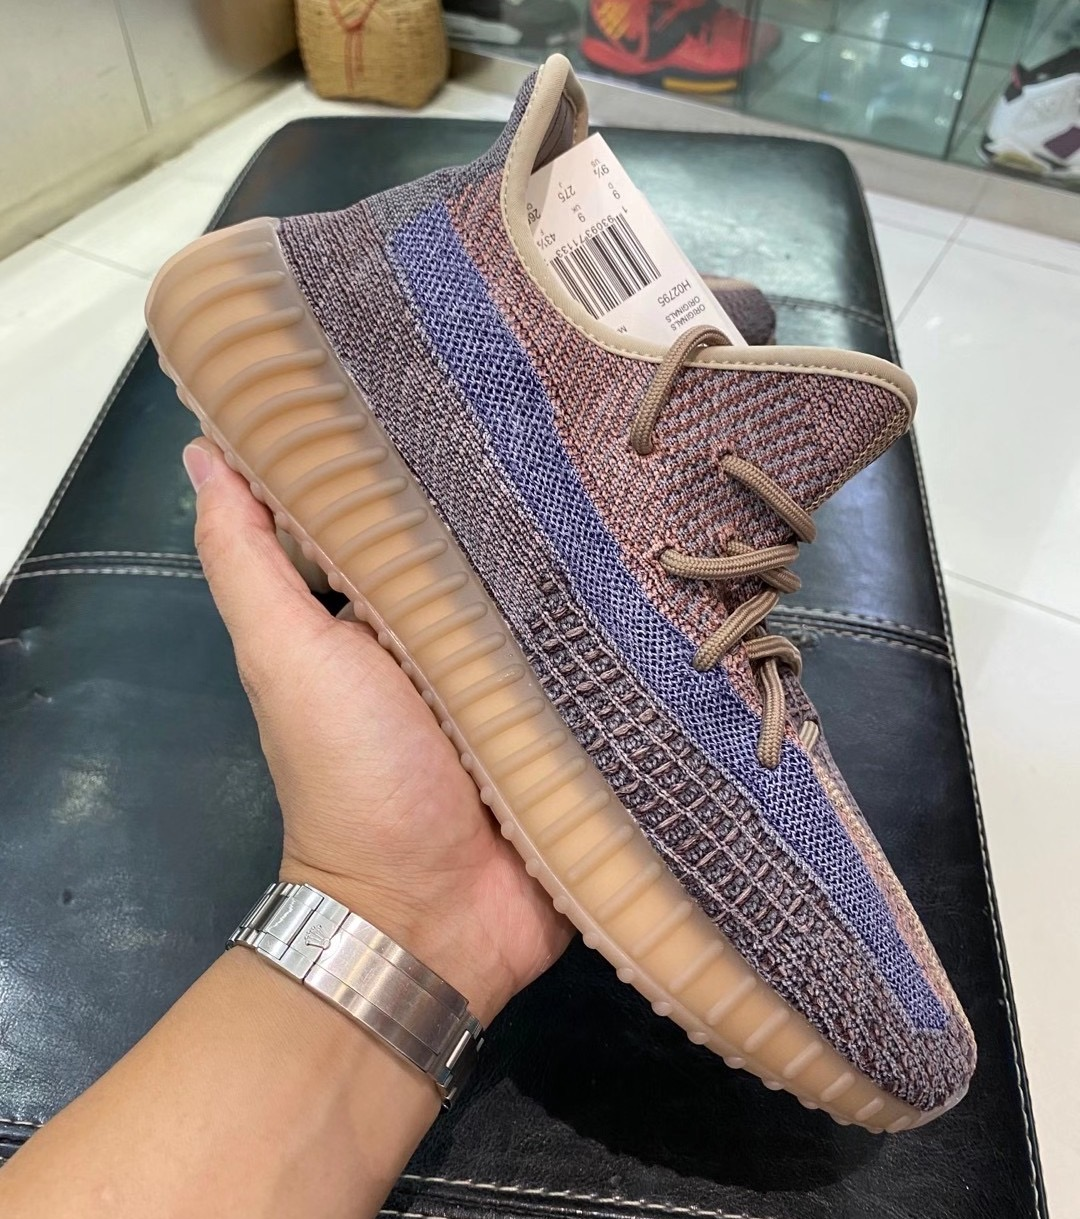 adidas-Yeezy-Boost-350-V2-Fade-H02795-Release-Date-1.jpeg